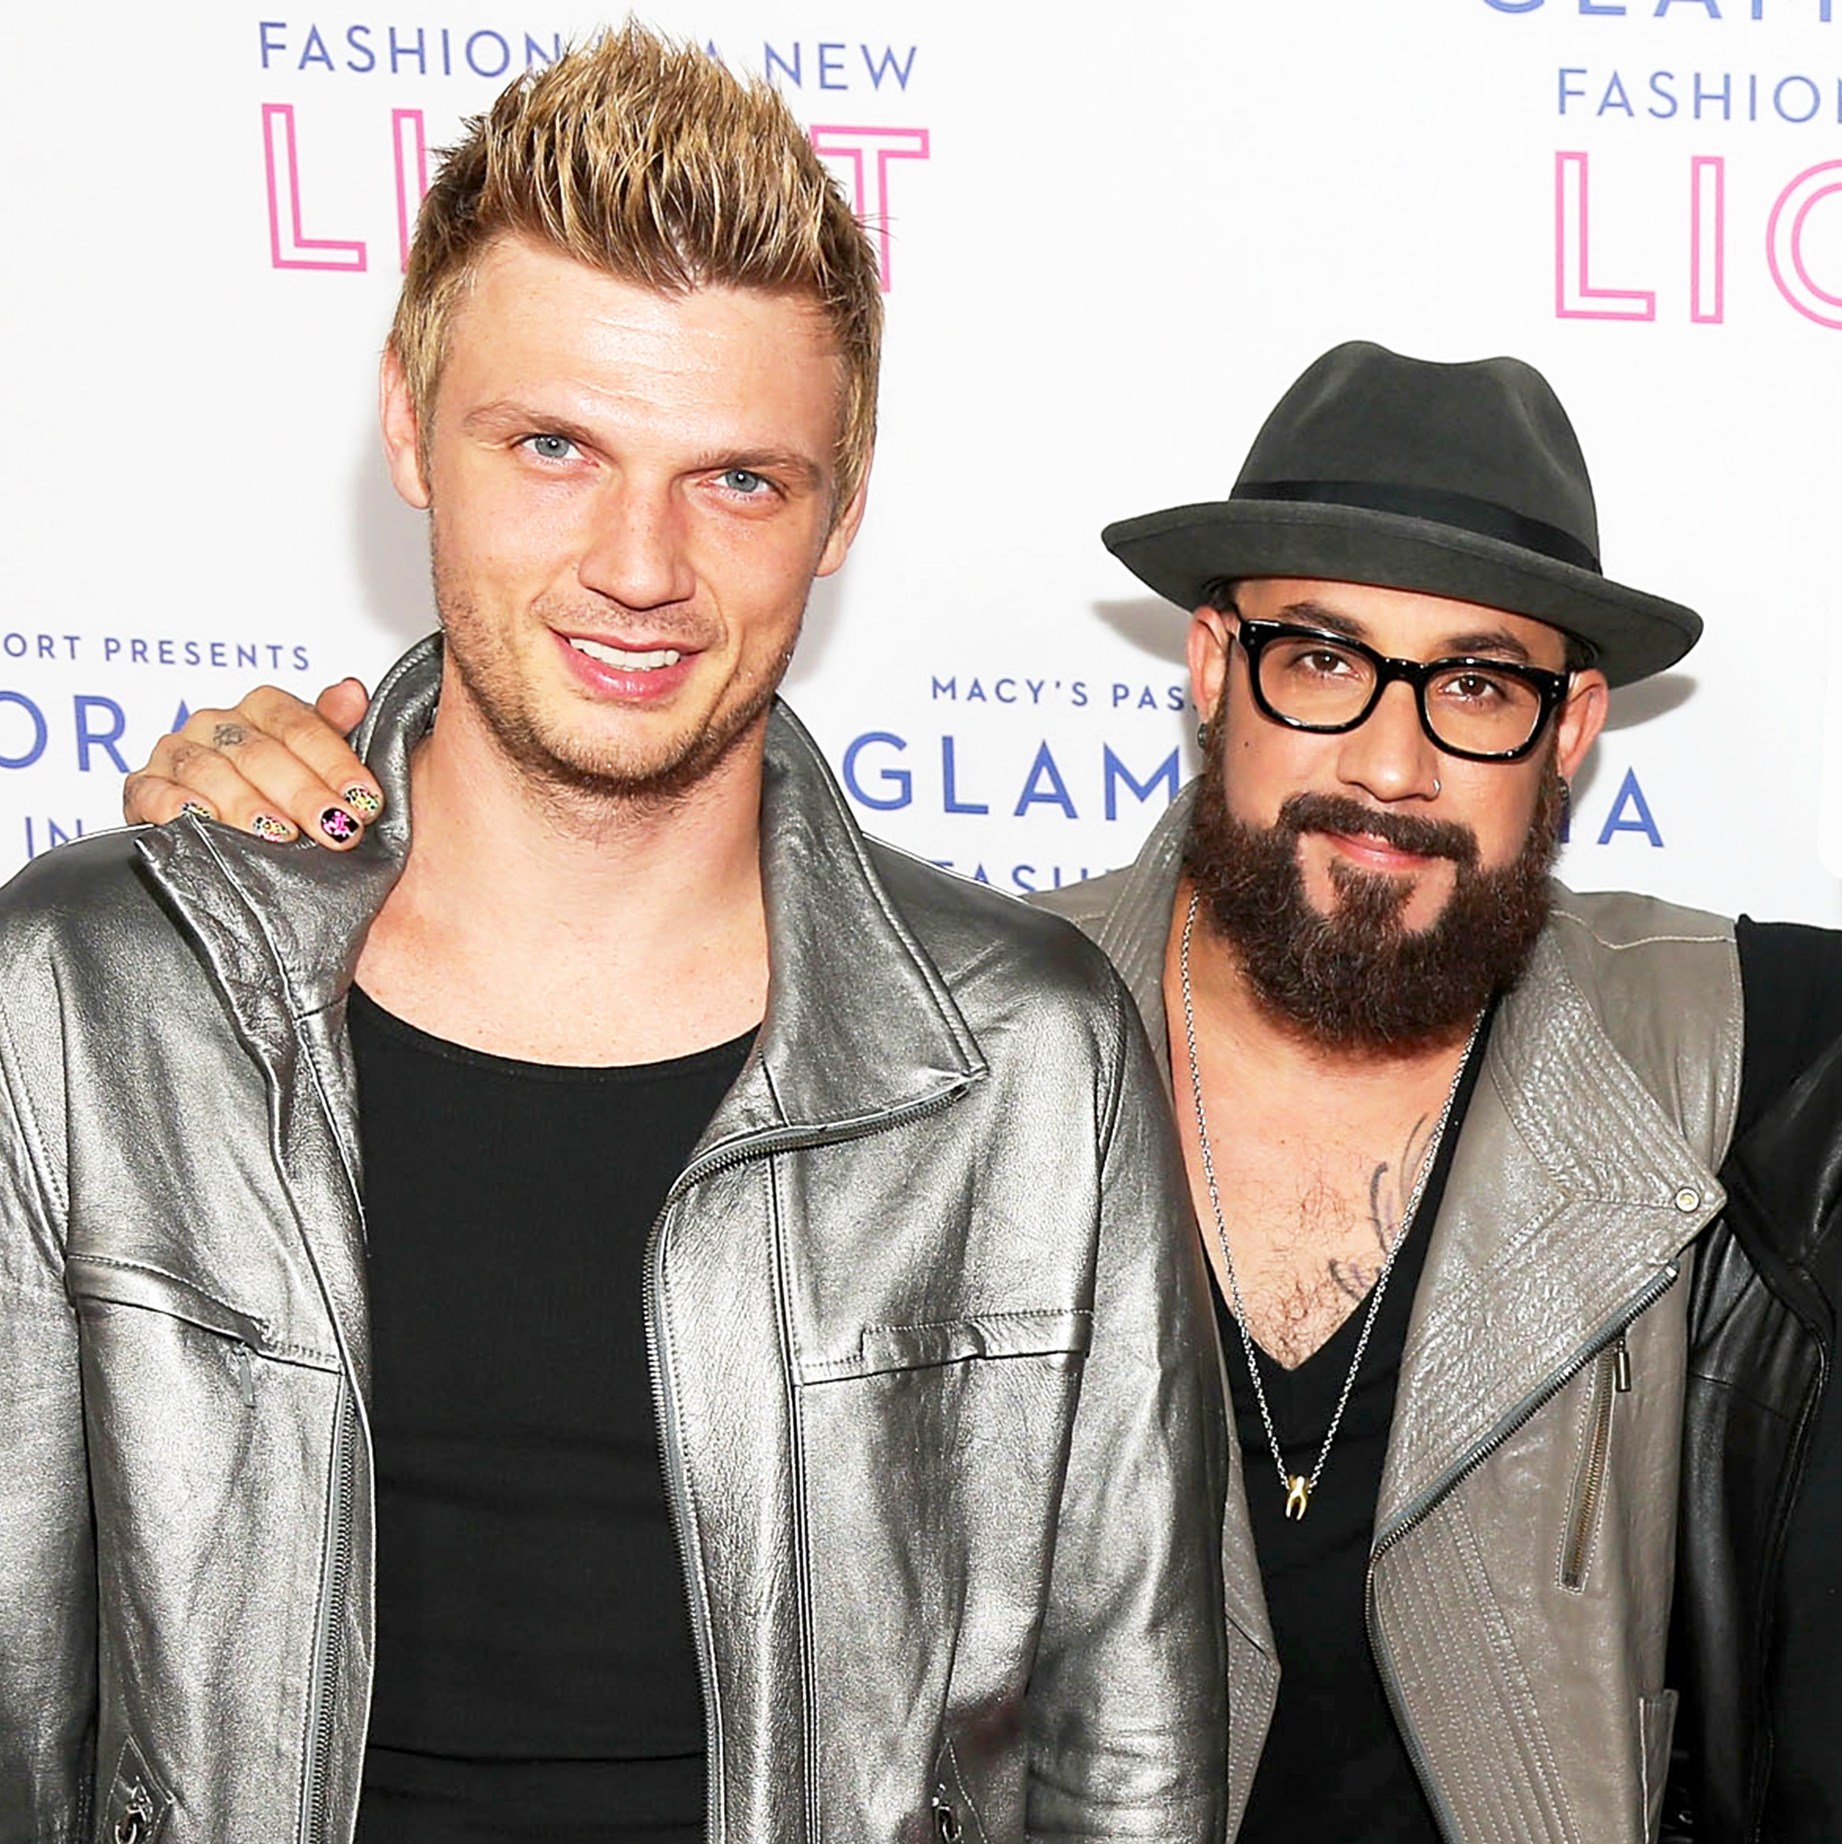 Nick Carter and AJ McLean of Backstreet Boys attend Glamorama presented by Macy's Passport at Orpheum Theatre in Los Angeles, California.